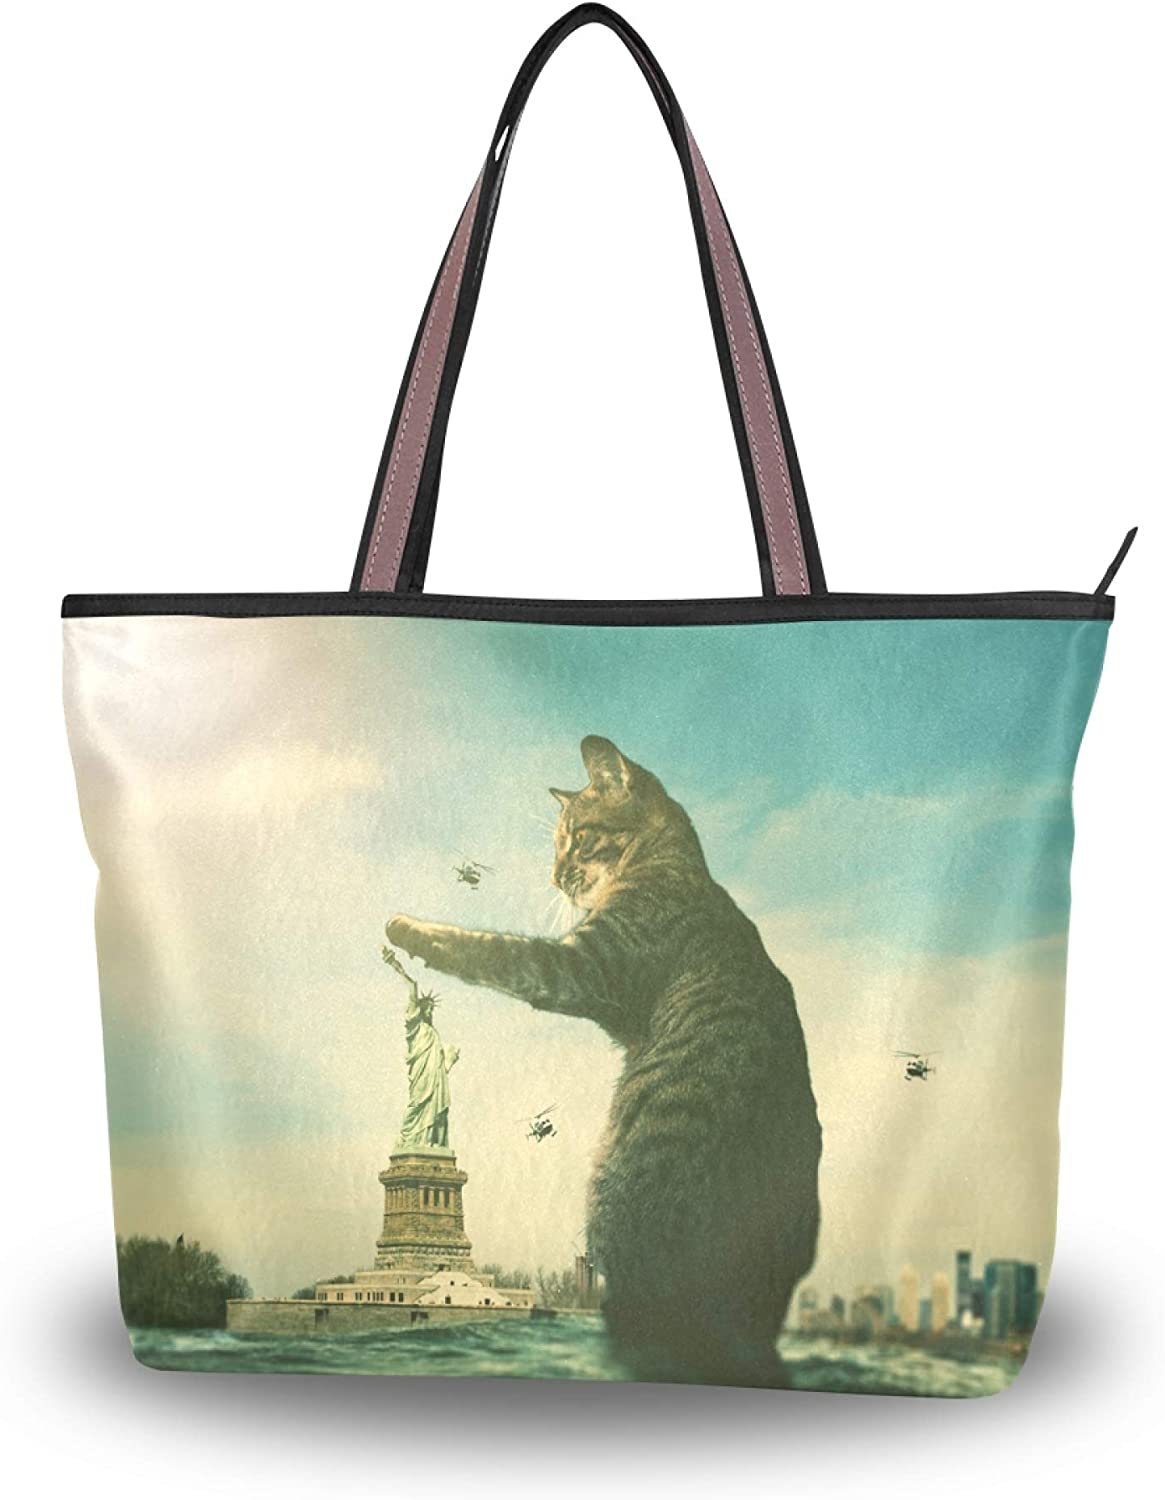 Tote Bag with Cat Elements for Women School Work Travel and Shopping (Large)